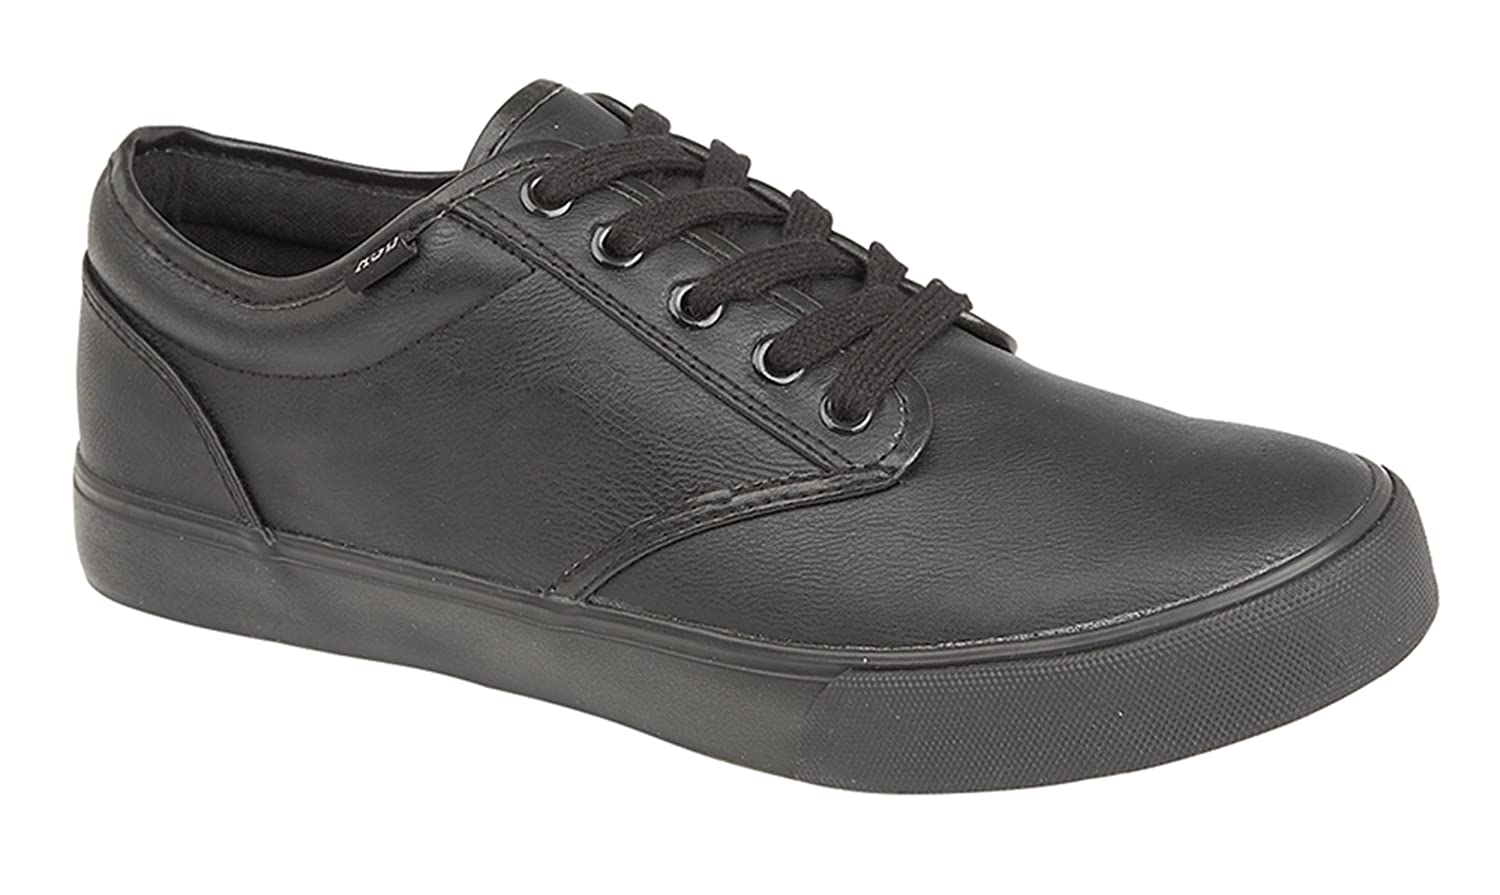 Mens Black Trainers Faux Leather Smart Casual Work Shoes Boys Girls